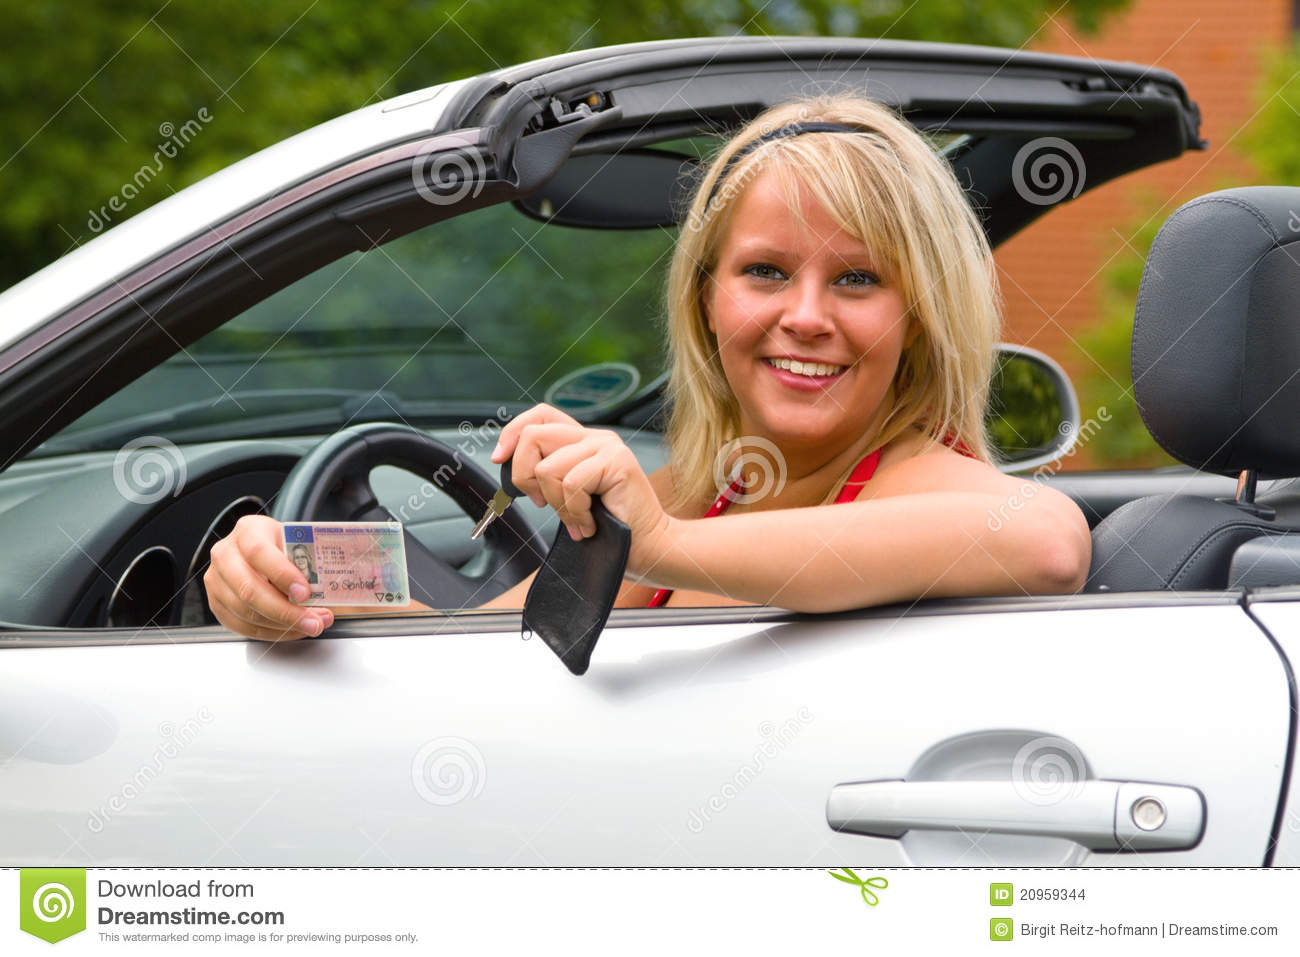 Valuable drivers license and woman nude you mean?